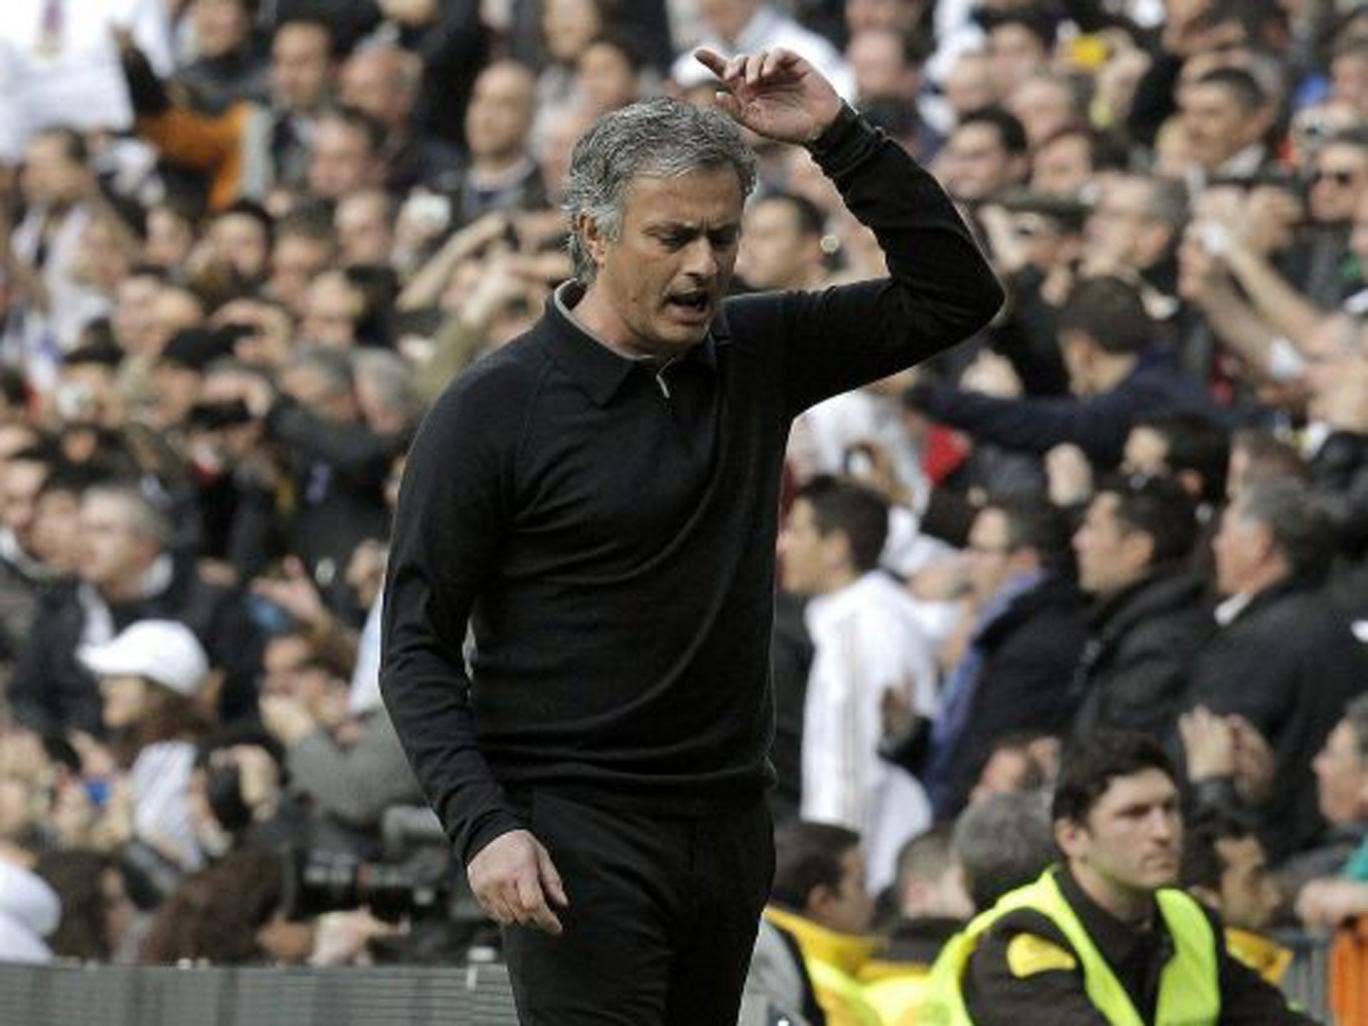 As role models go Vicente del Bosque will not have featured too prominently for Jose Mourinho